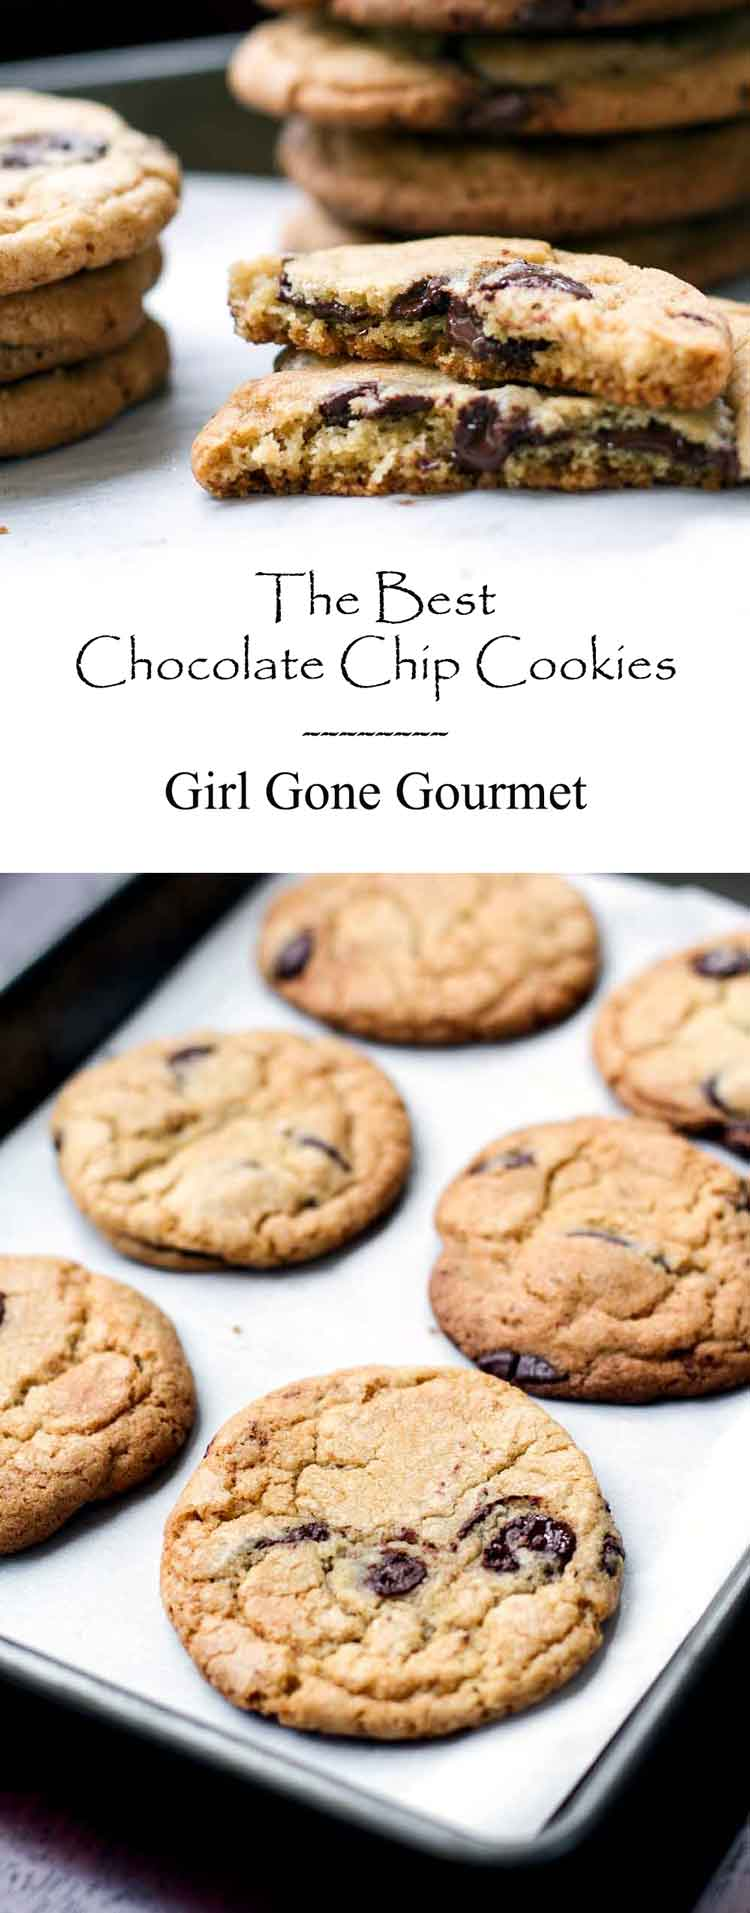 The Best Chocolate Chip Cookies I've Ever Made | Girl Gone Gourmet